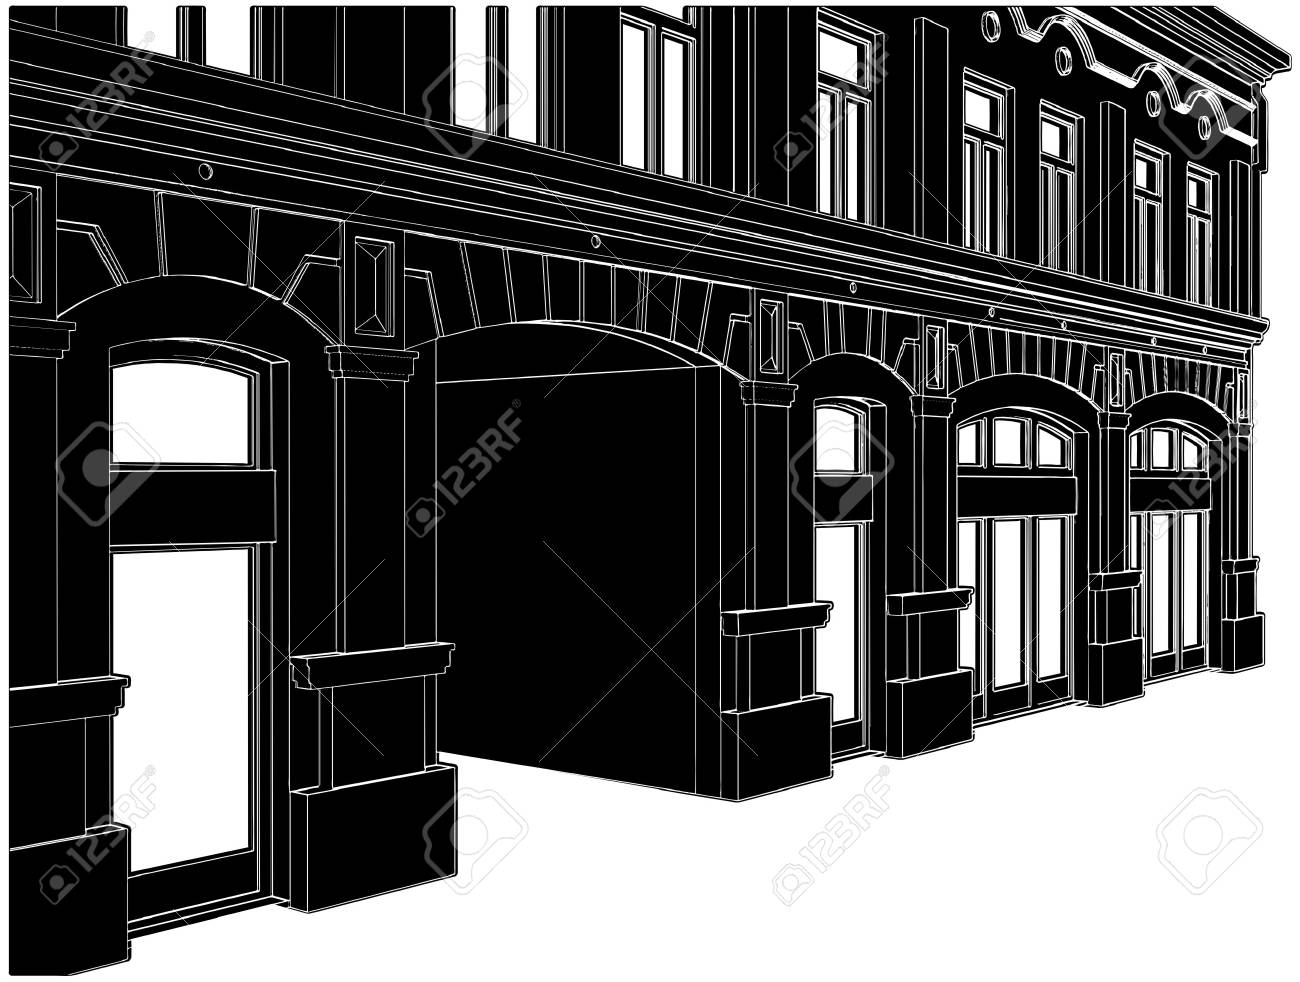 Building Eclectic House Stock Vector - 8069621